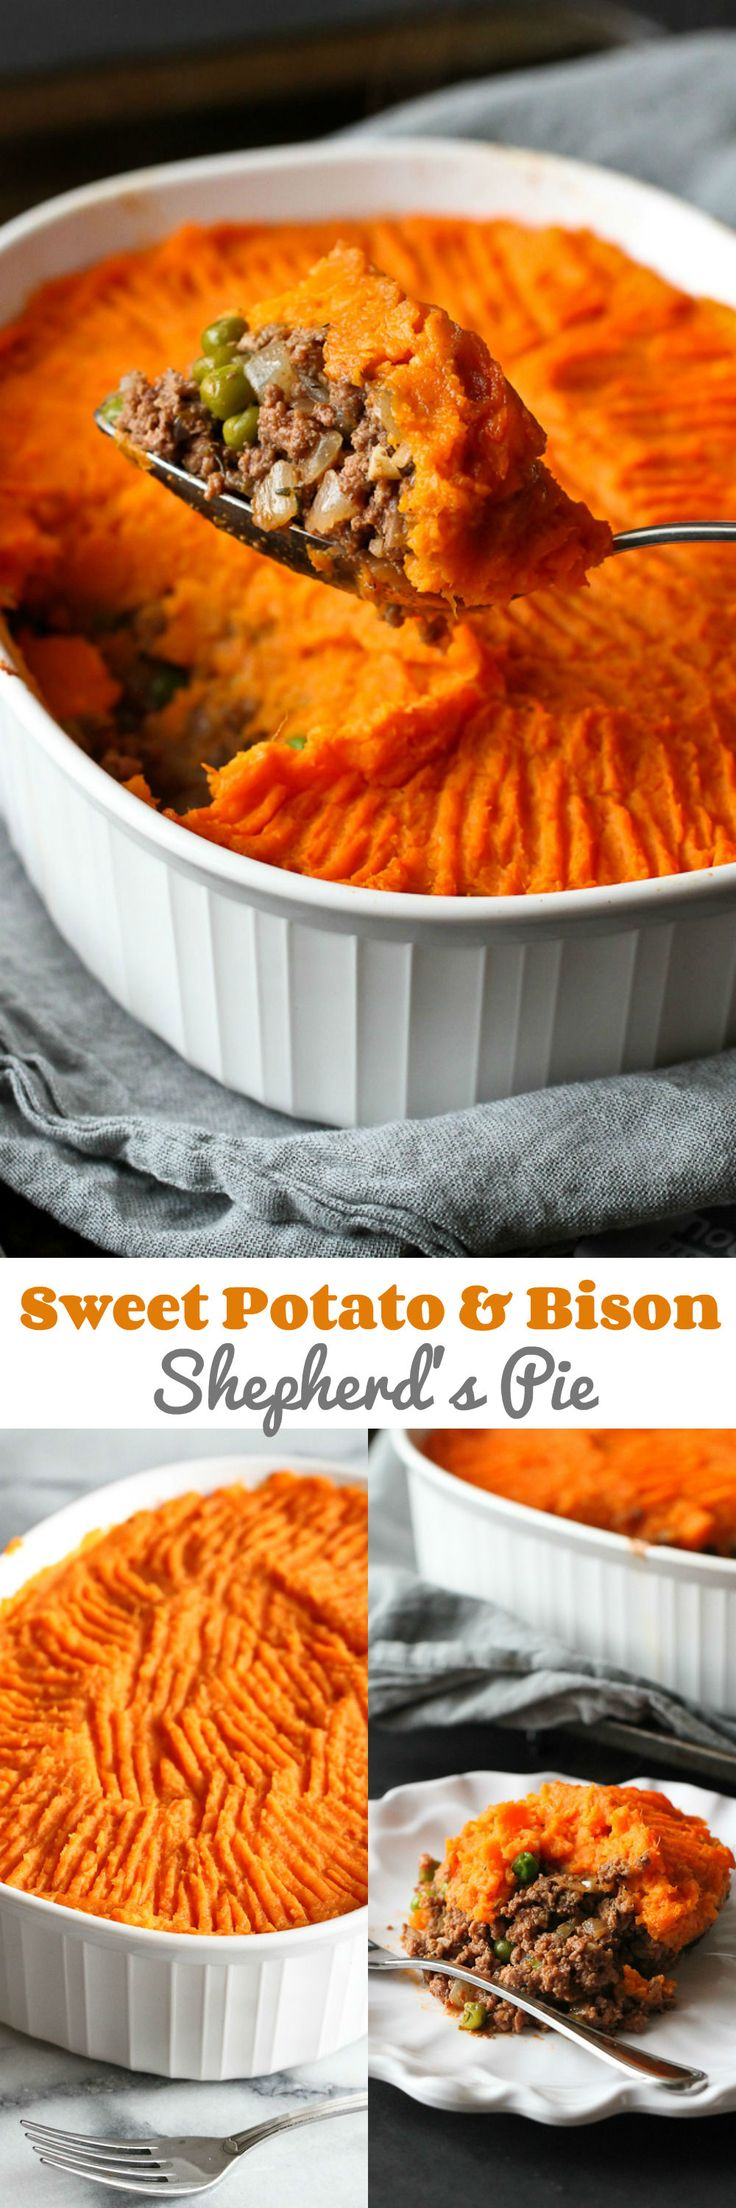 Sweet Potato & Bison Shepherd's Pie…A hearty, classic casserole recipe with a twist! 310 calories and 9 Weight Watcher SmartPoints